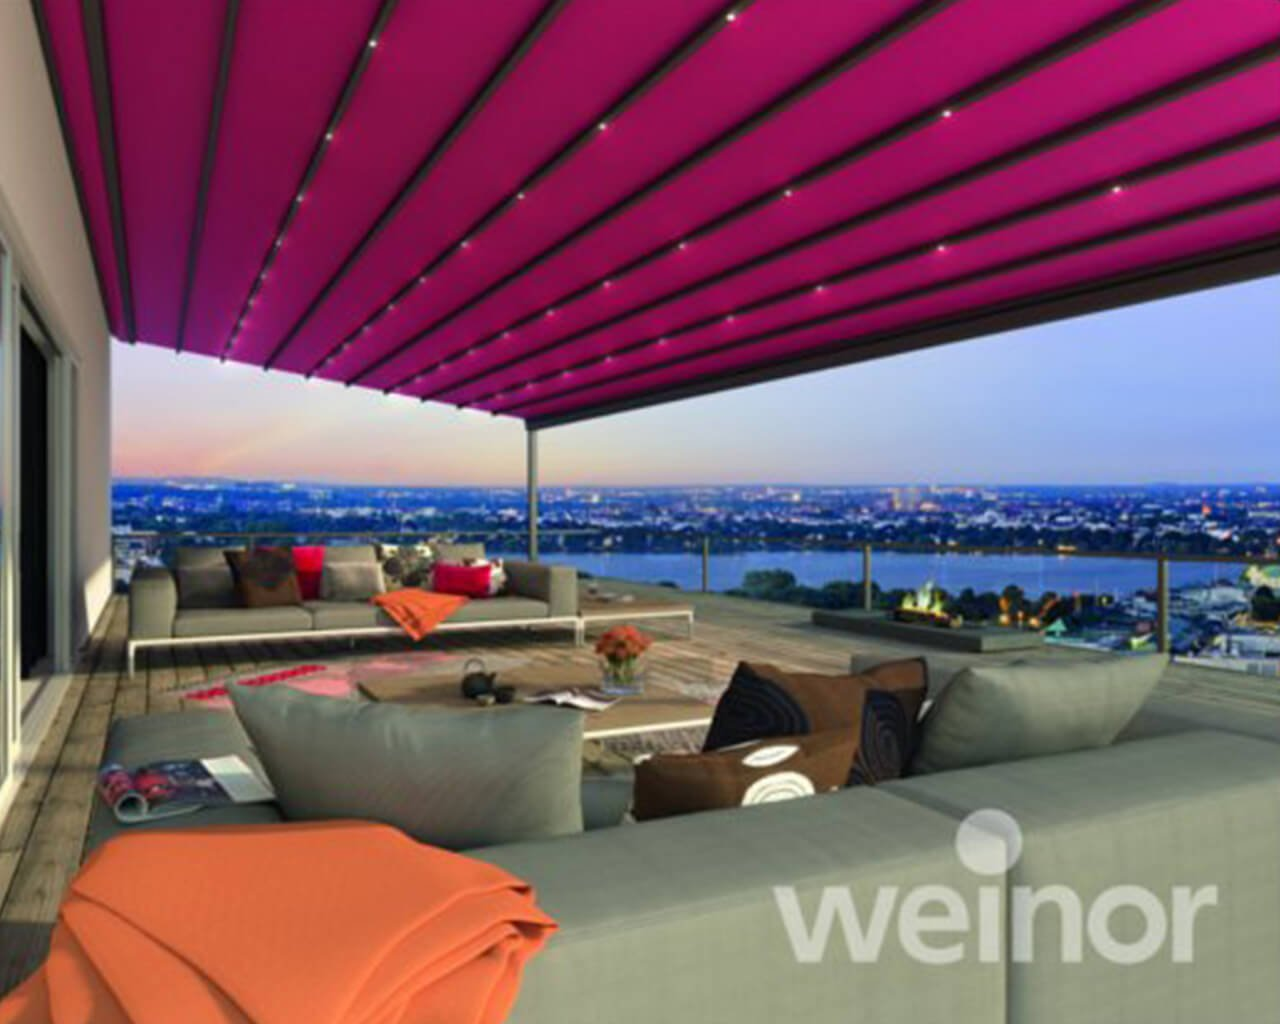 Pergotex retractable roof system during night time